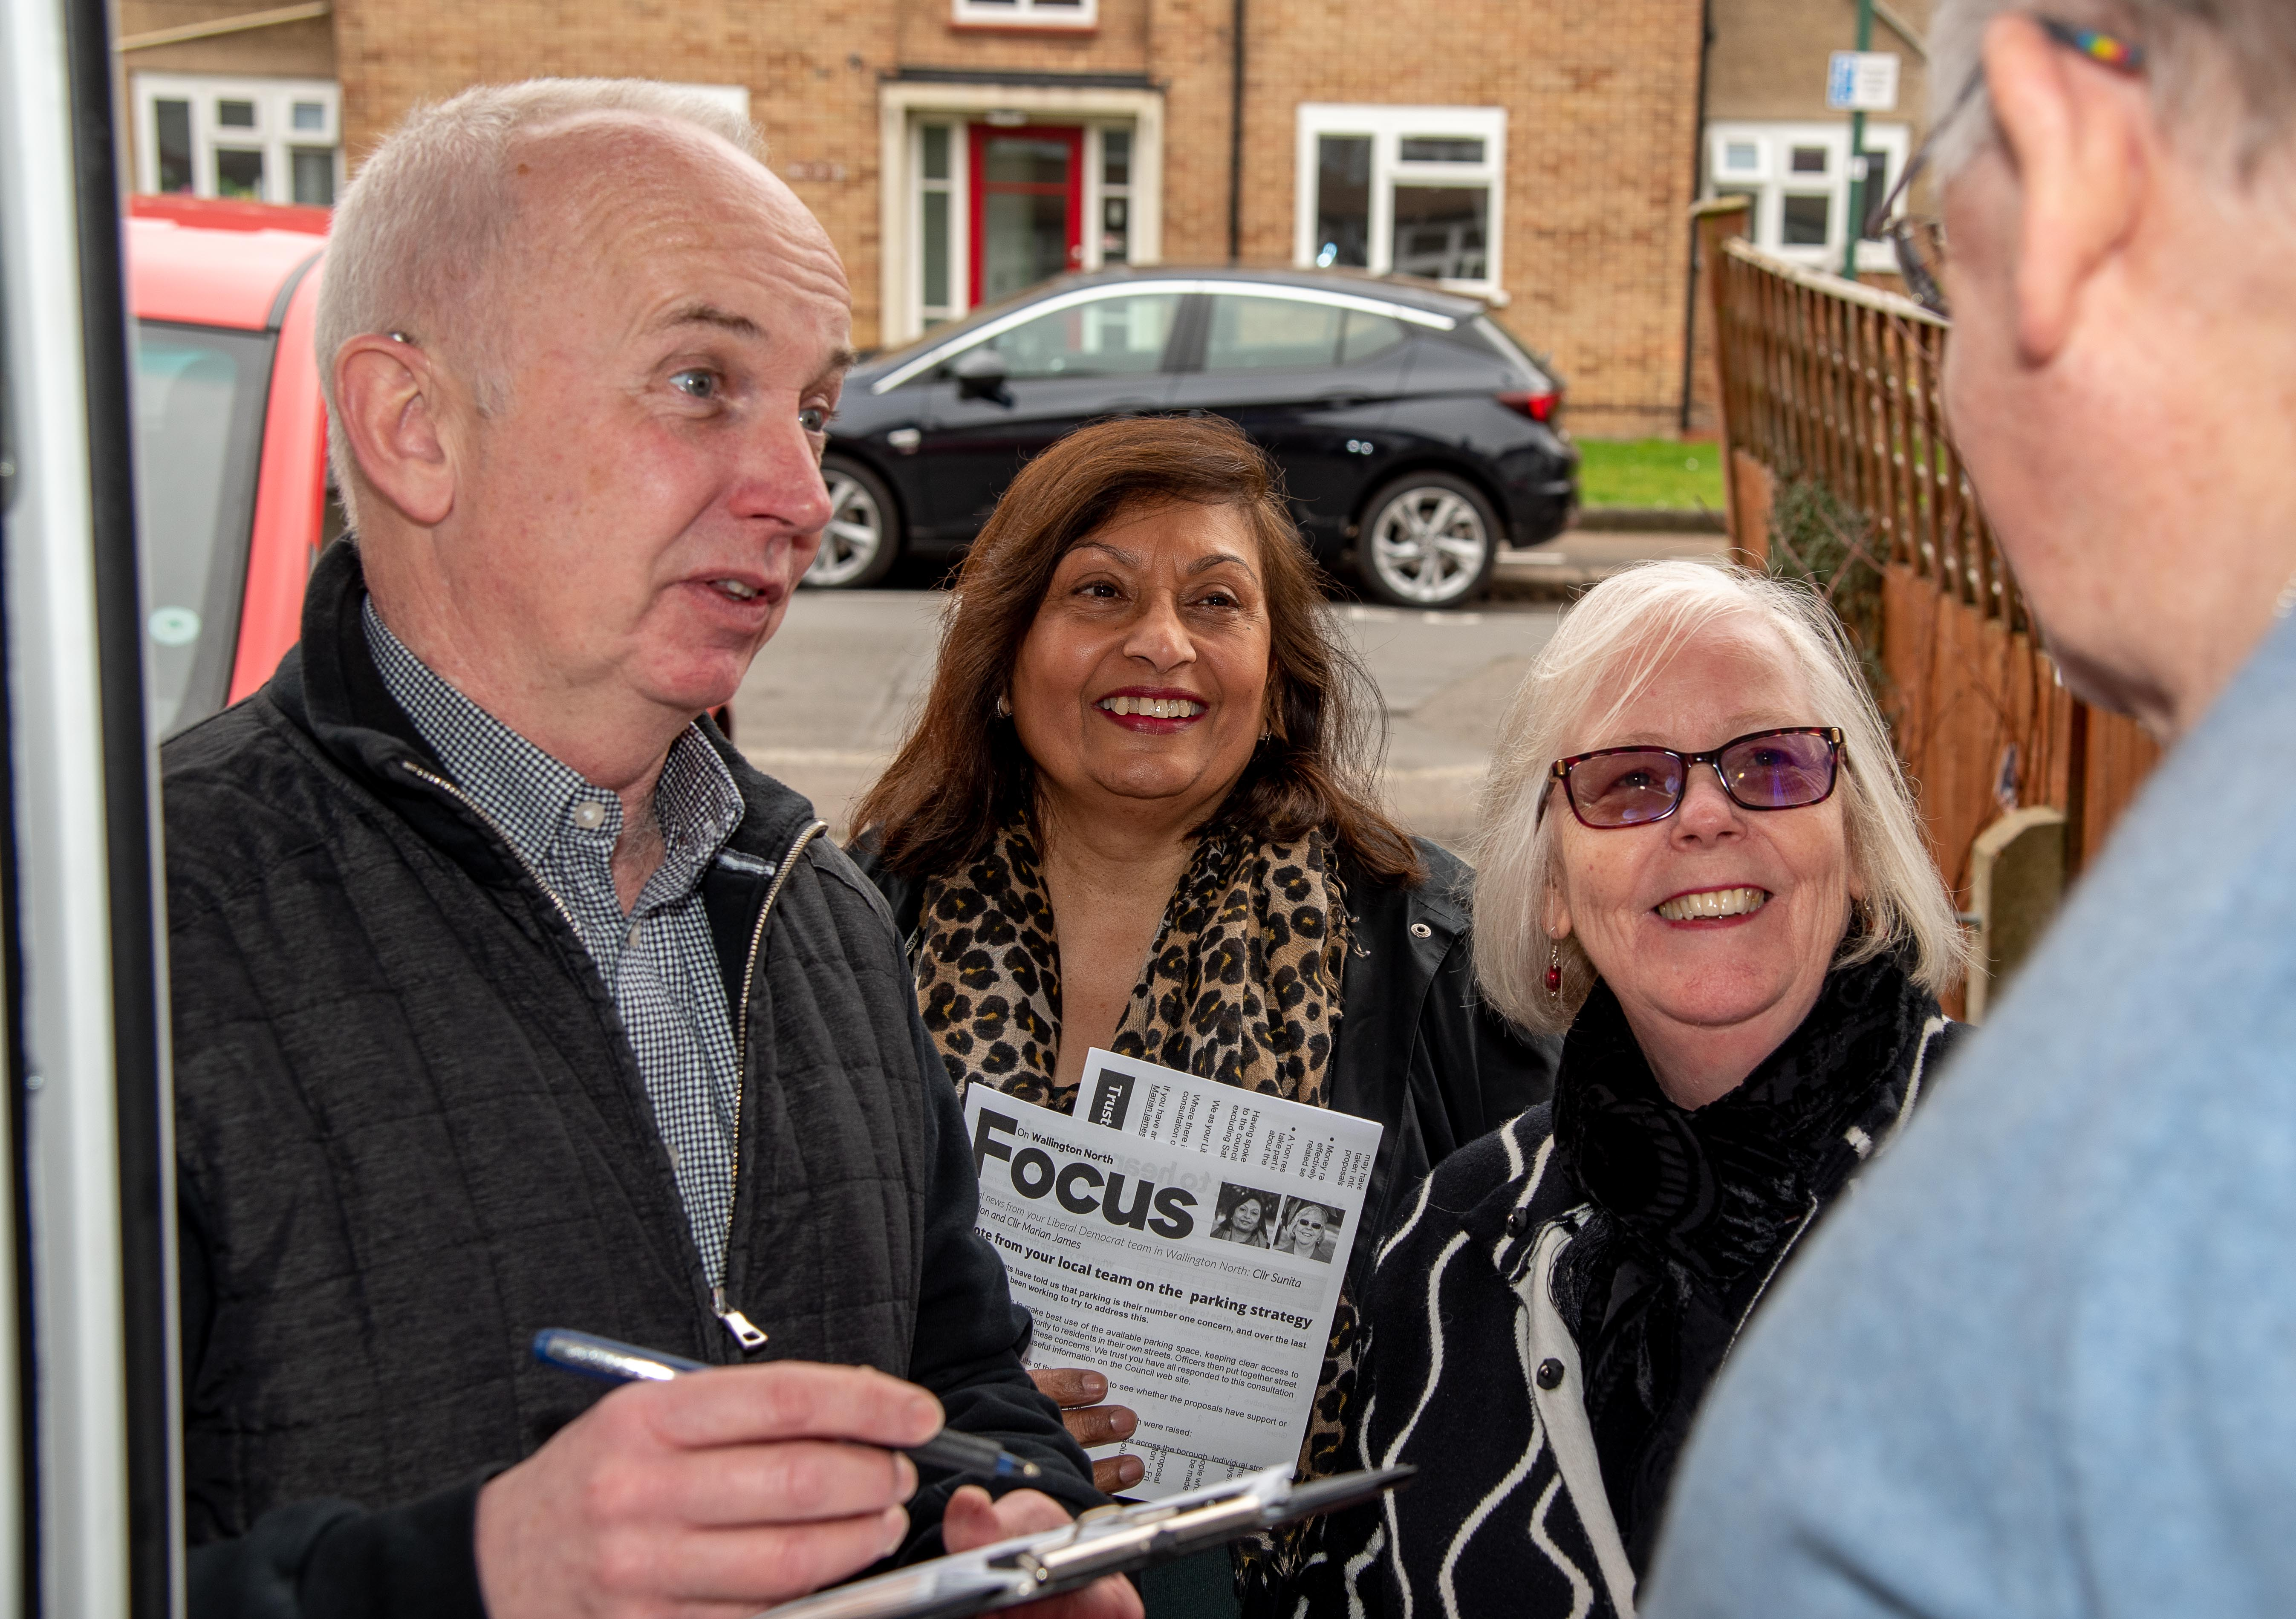 Barry Lewis will be a local champion for Wallington North